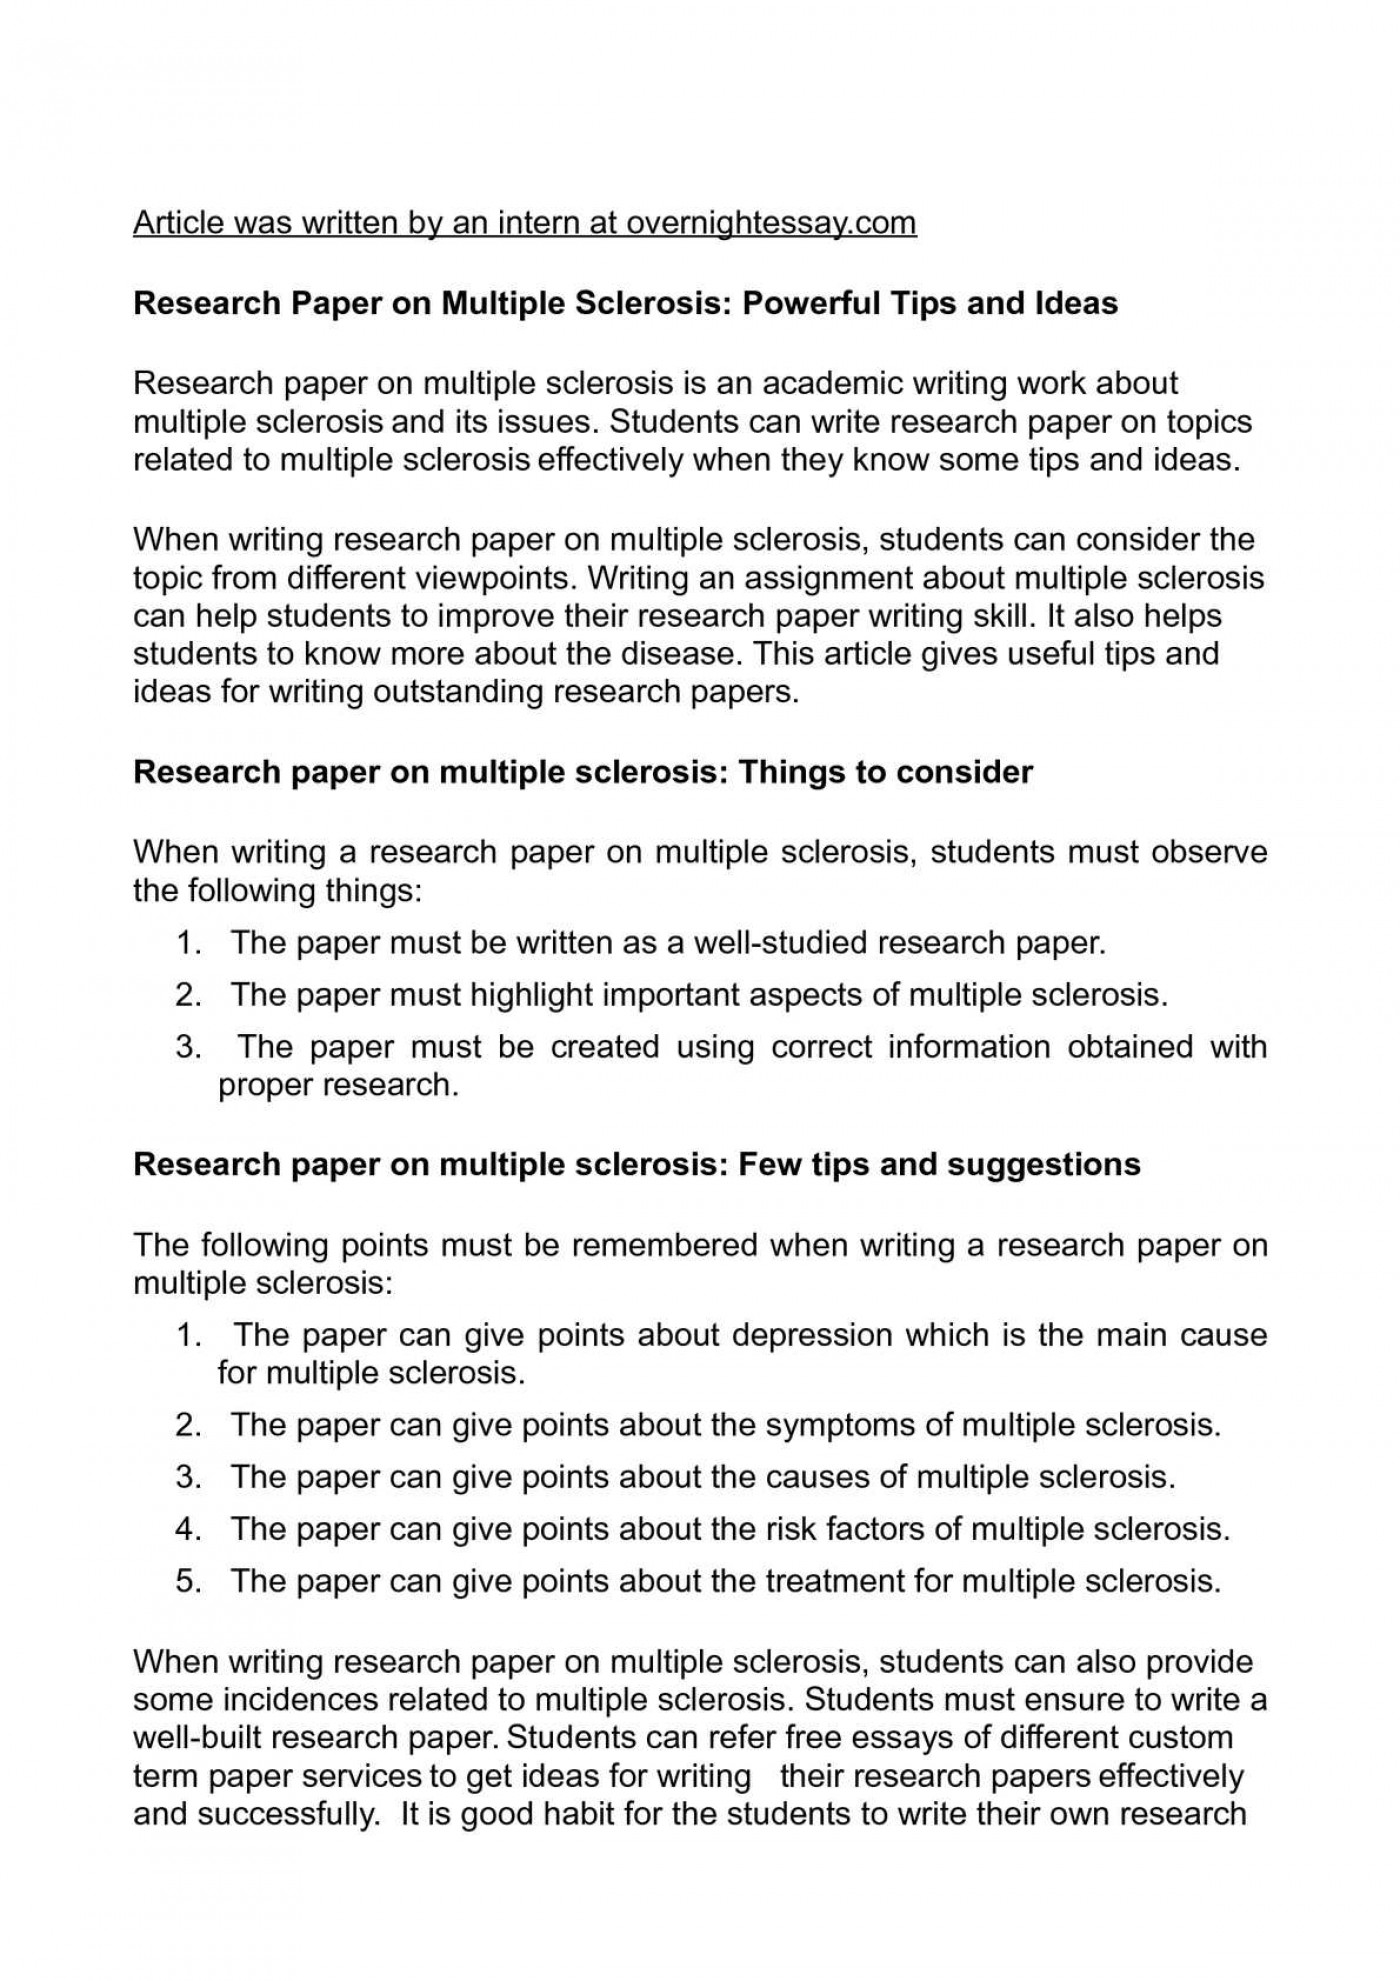 015 Research Paper How To Write Breathtaking A Hook Reference Conclusion For Pdf 1400